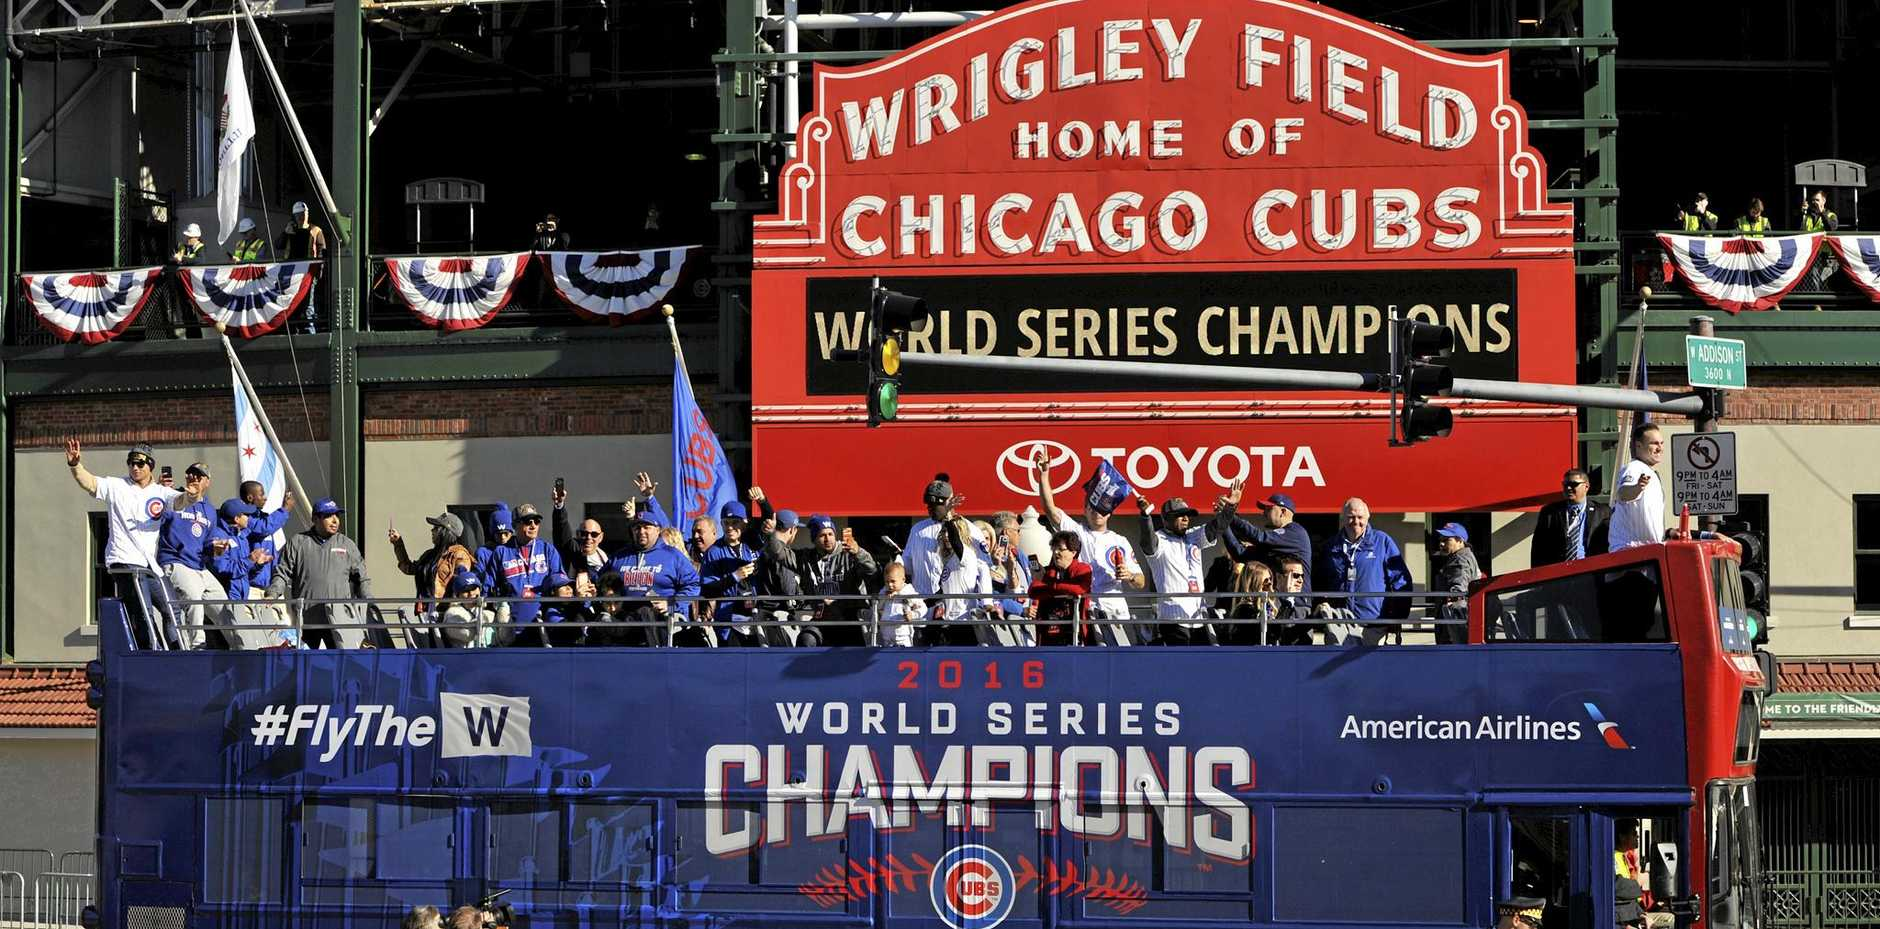 CHEATED: A businessman who defrauded the World Series-winning Chicago Cubs has been sent to jail for 18 months.